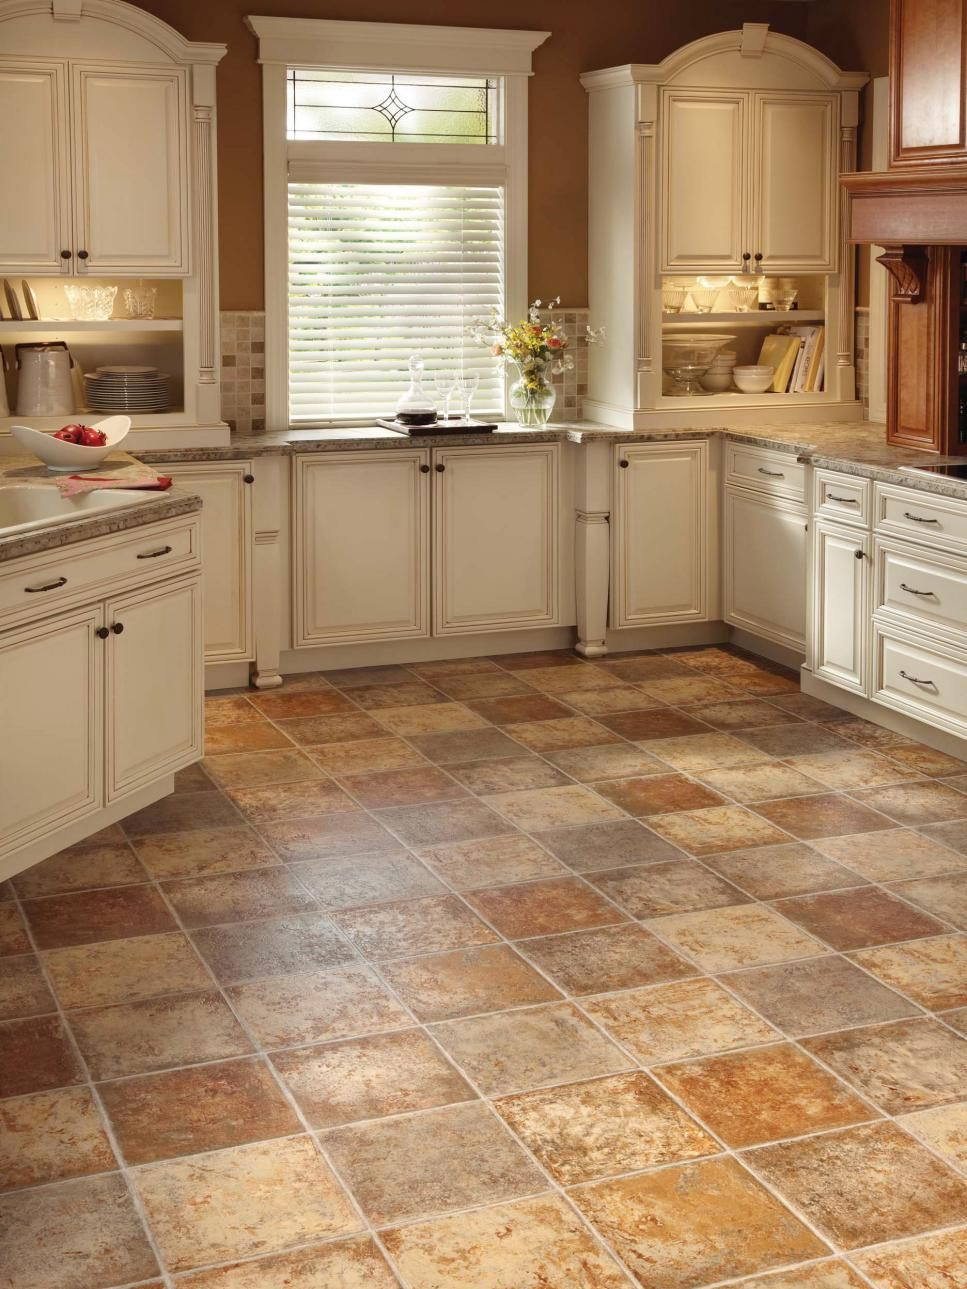 A budget friendly option laminate floors are available in many styles that mimic pricey hardwood tile and stone surfaces